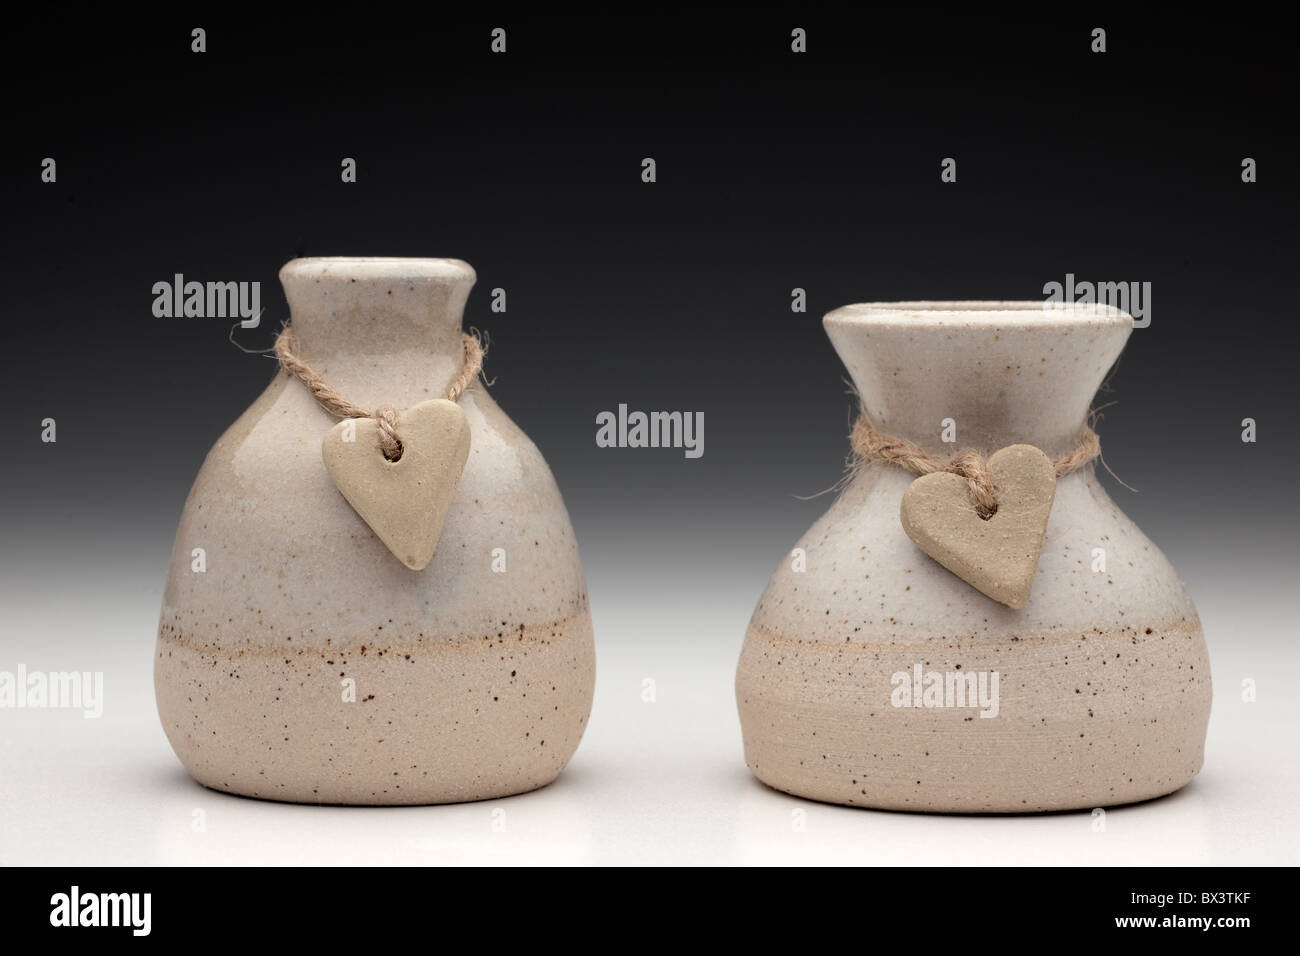 Two stone hearts on string wrapped around two ceramic pots - Stock Image